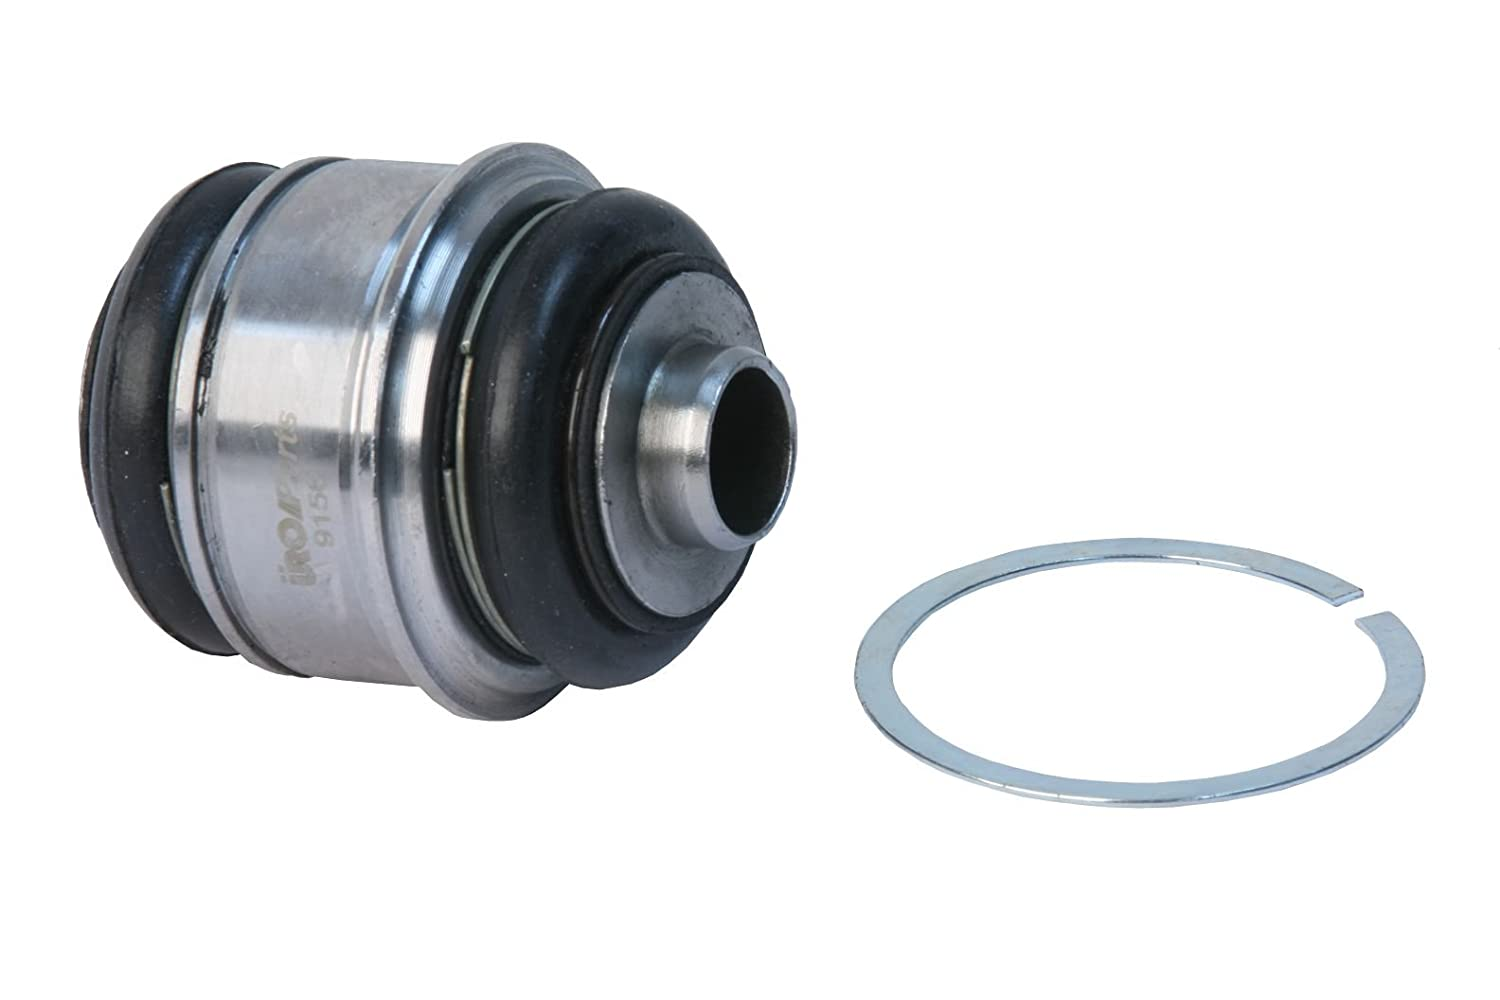 URO Parts 33 32 1 095 631 Rear Ball Joint